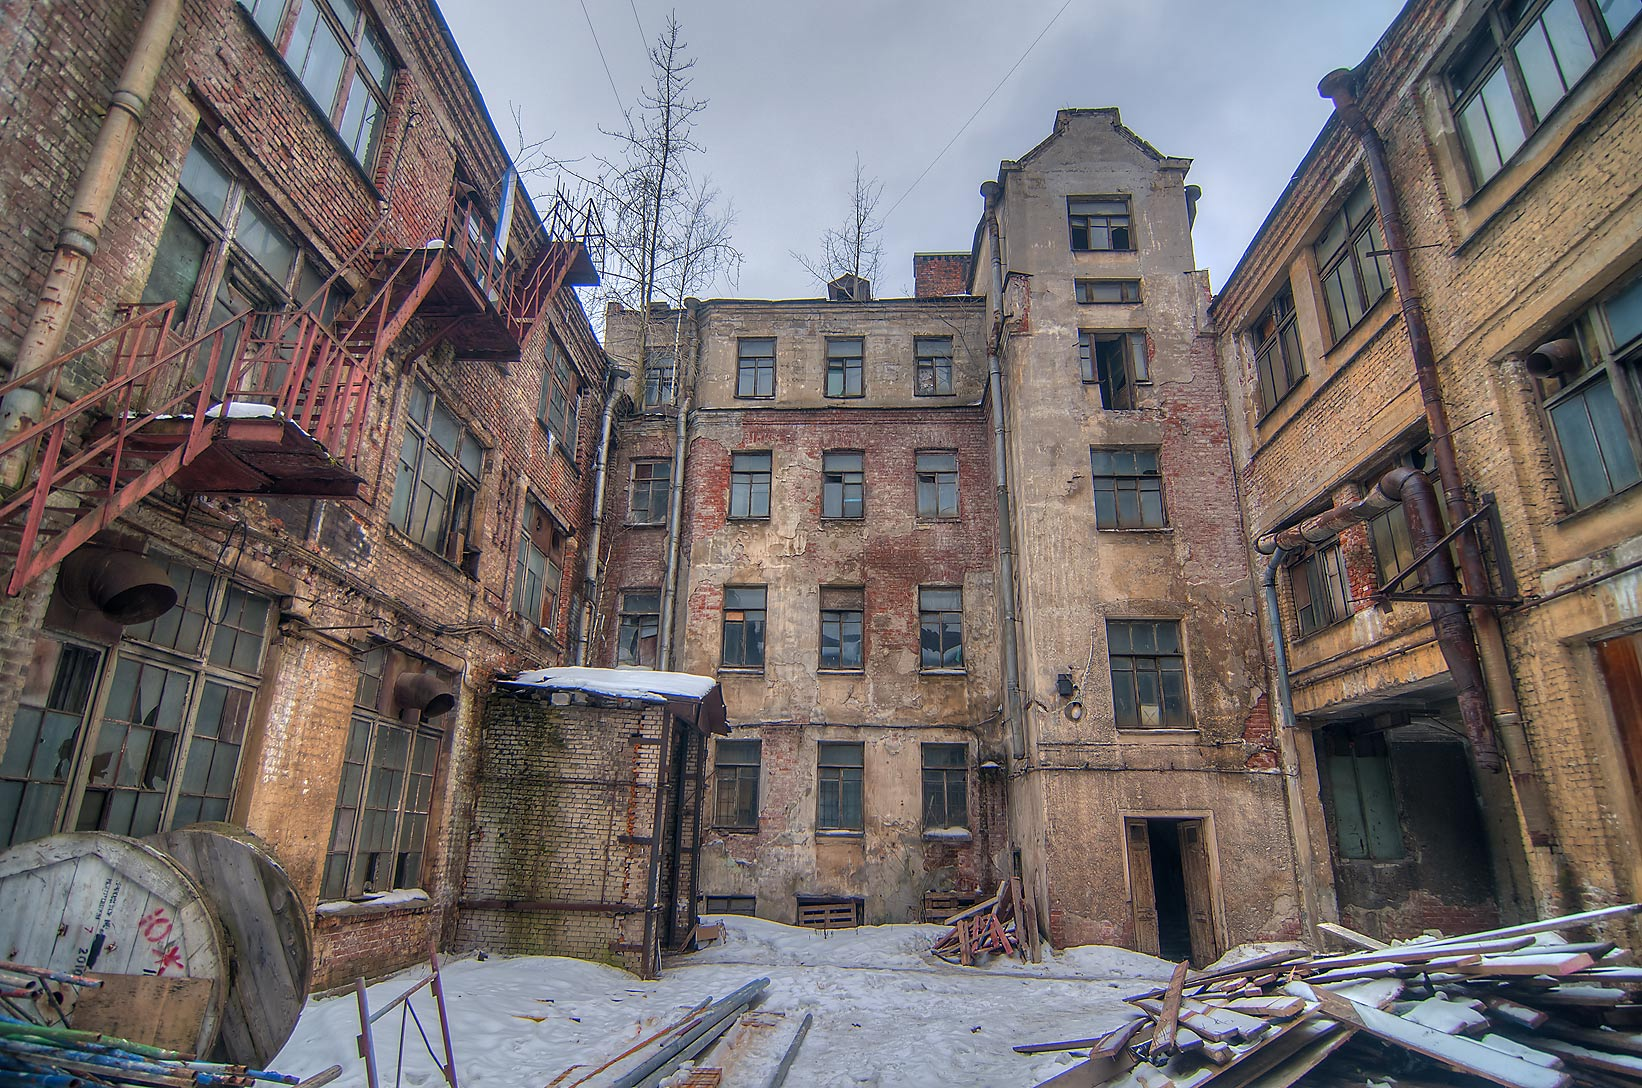 Old yard in Petrogradskaya Storona neighborhood. St.Petersburg, Russia